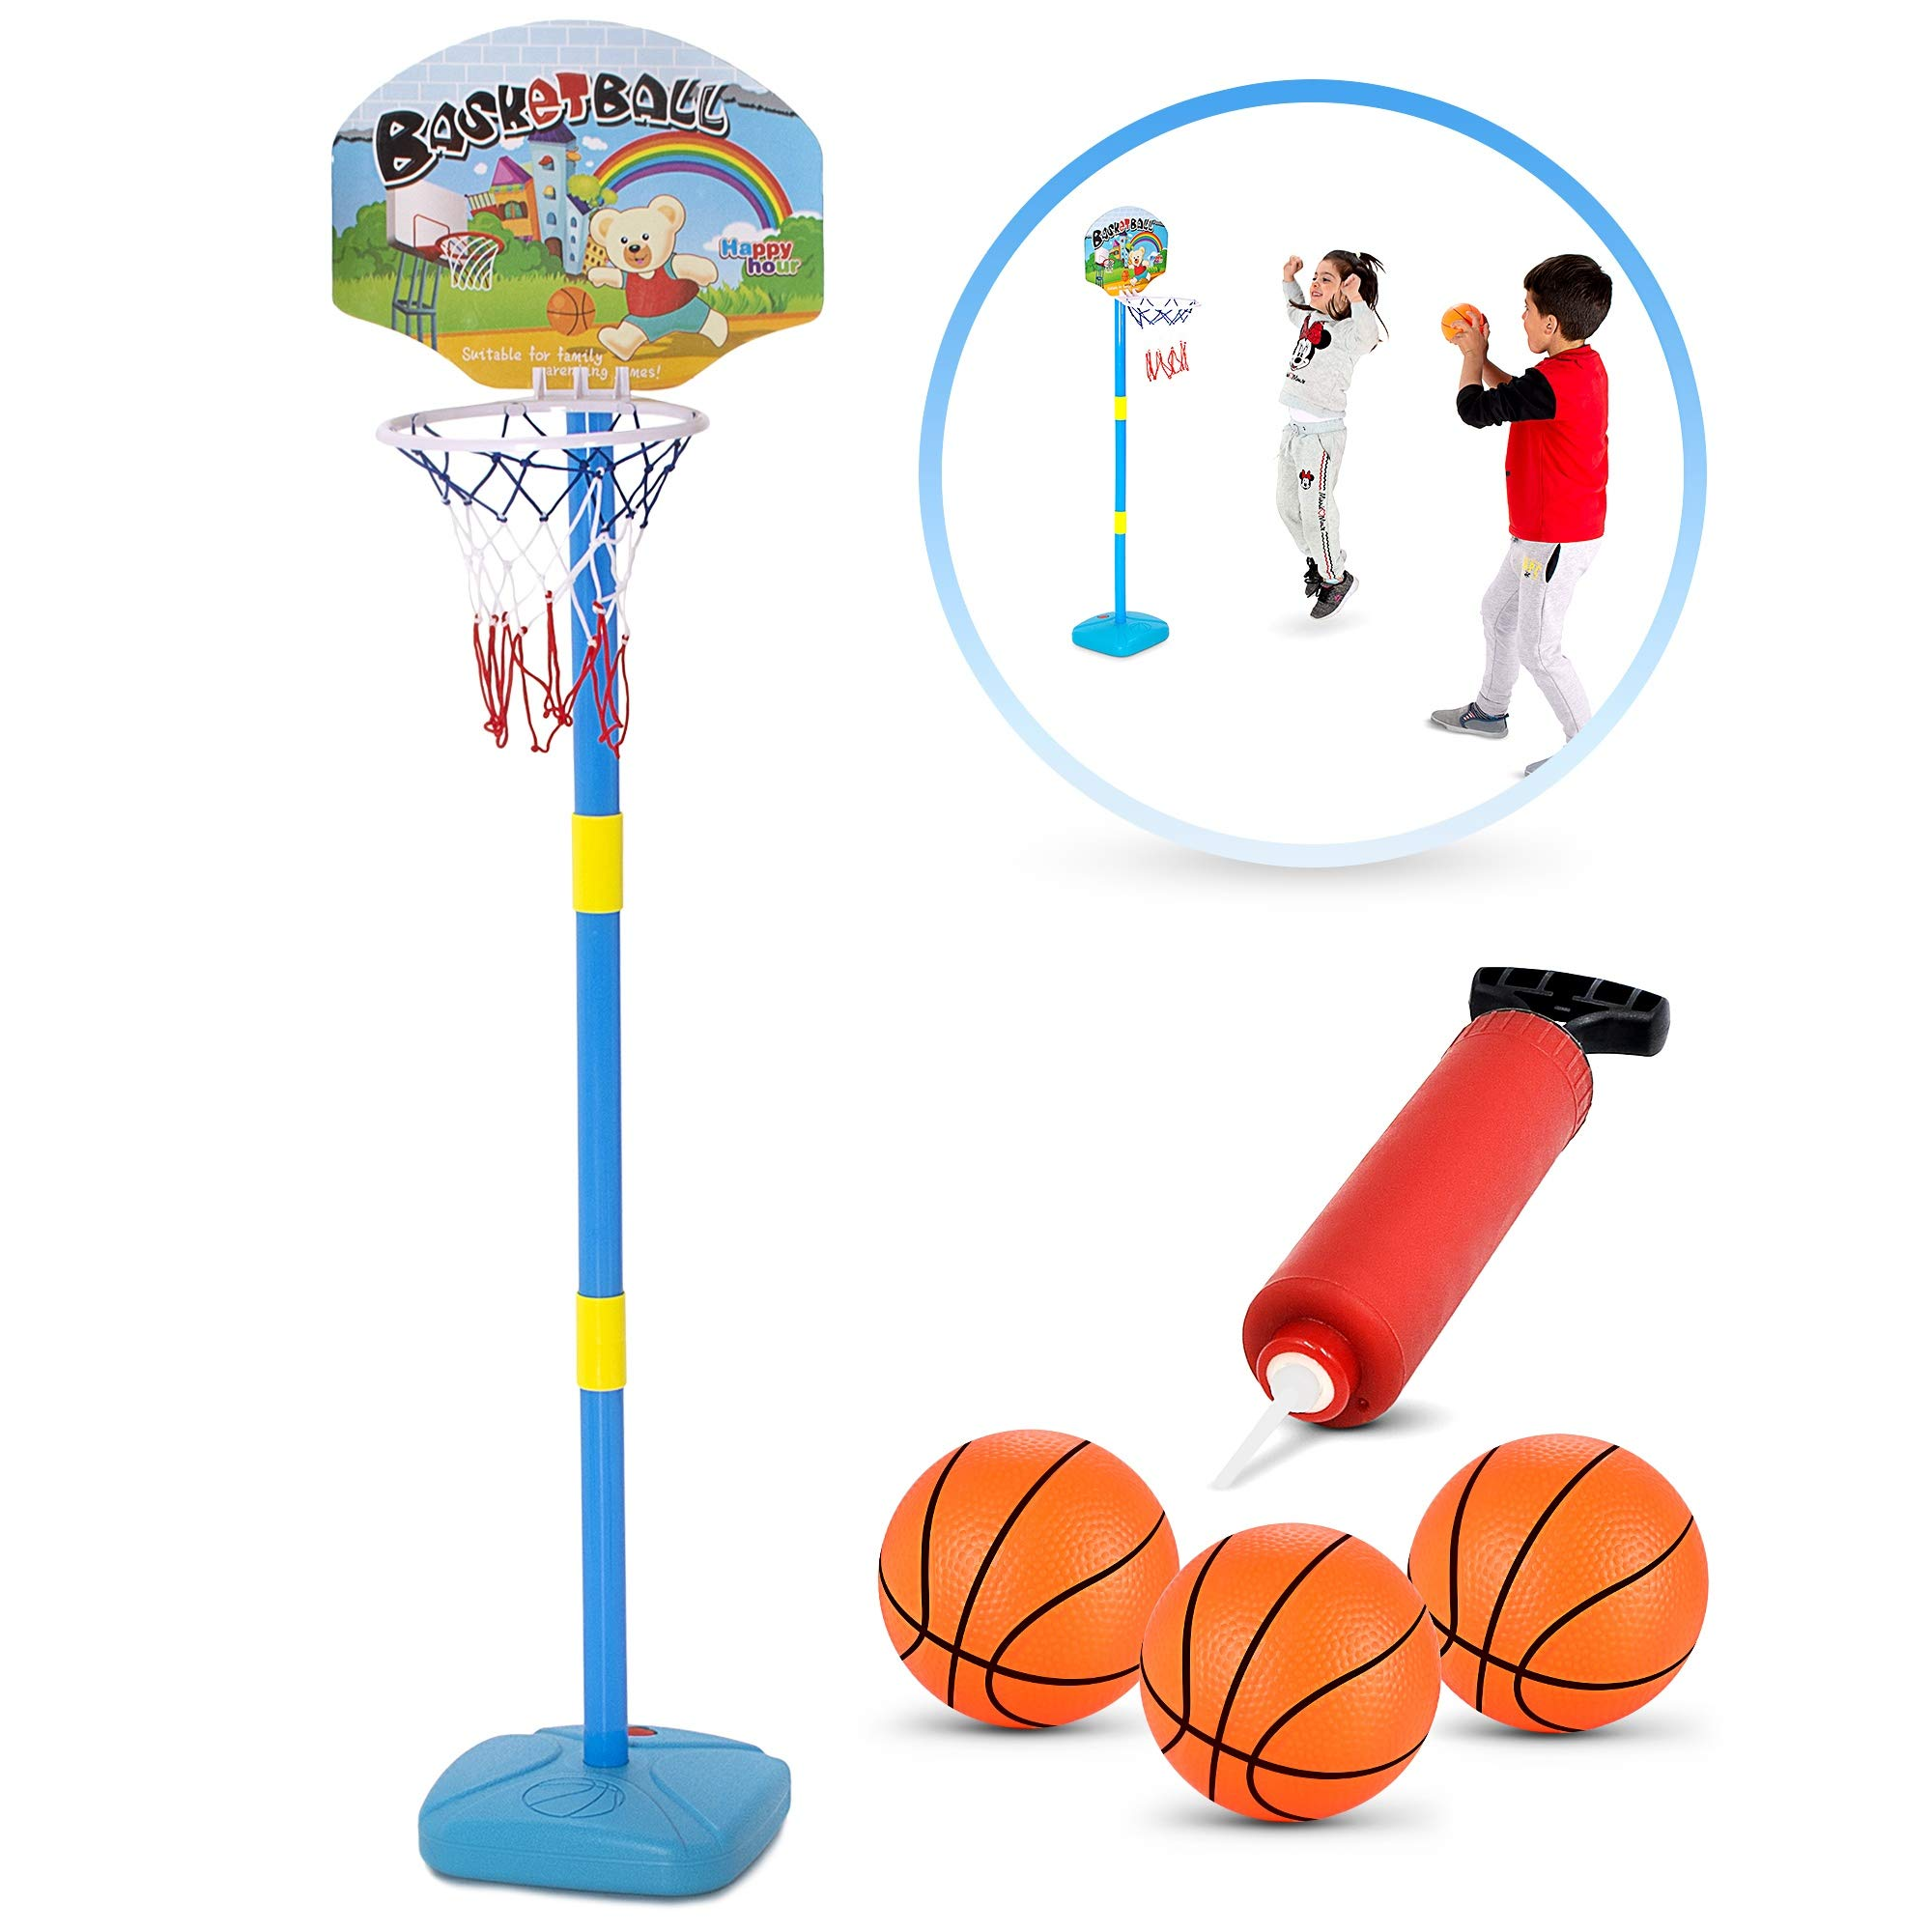 BRITENWAY Kids Basketball Hoop Play Set - Adjustable Height 25-52 Inches - Ideal for Toddlers Kids & Adults, Ages 3 Years and Up -Indoor - Outdoor Play, Sturdy Durable & Safe by BRITENWAY